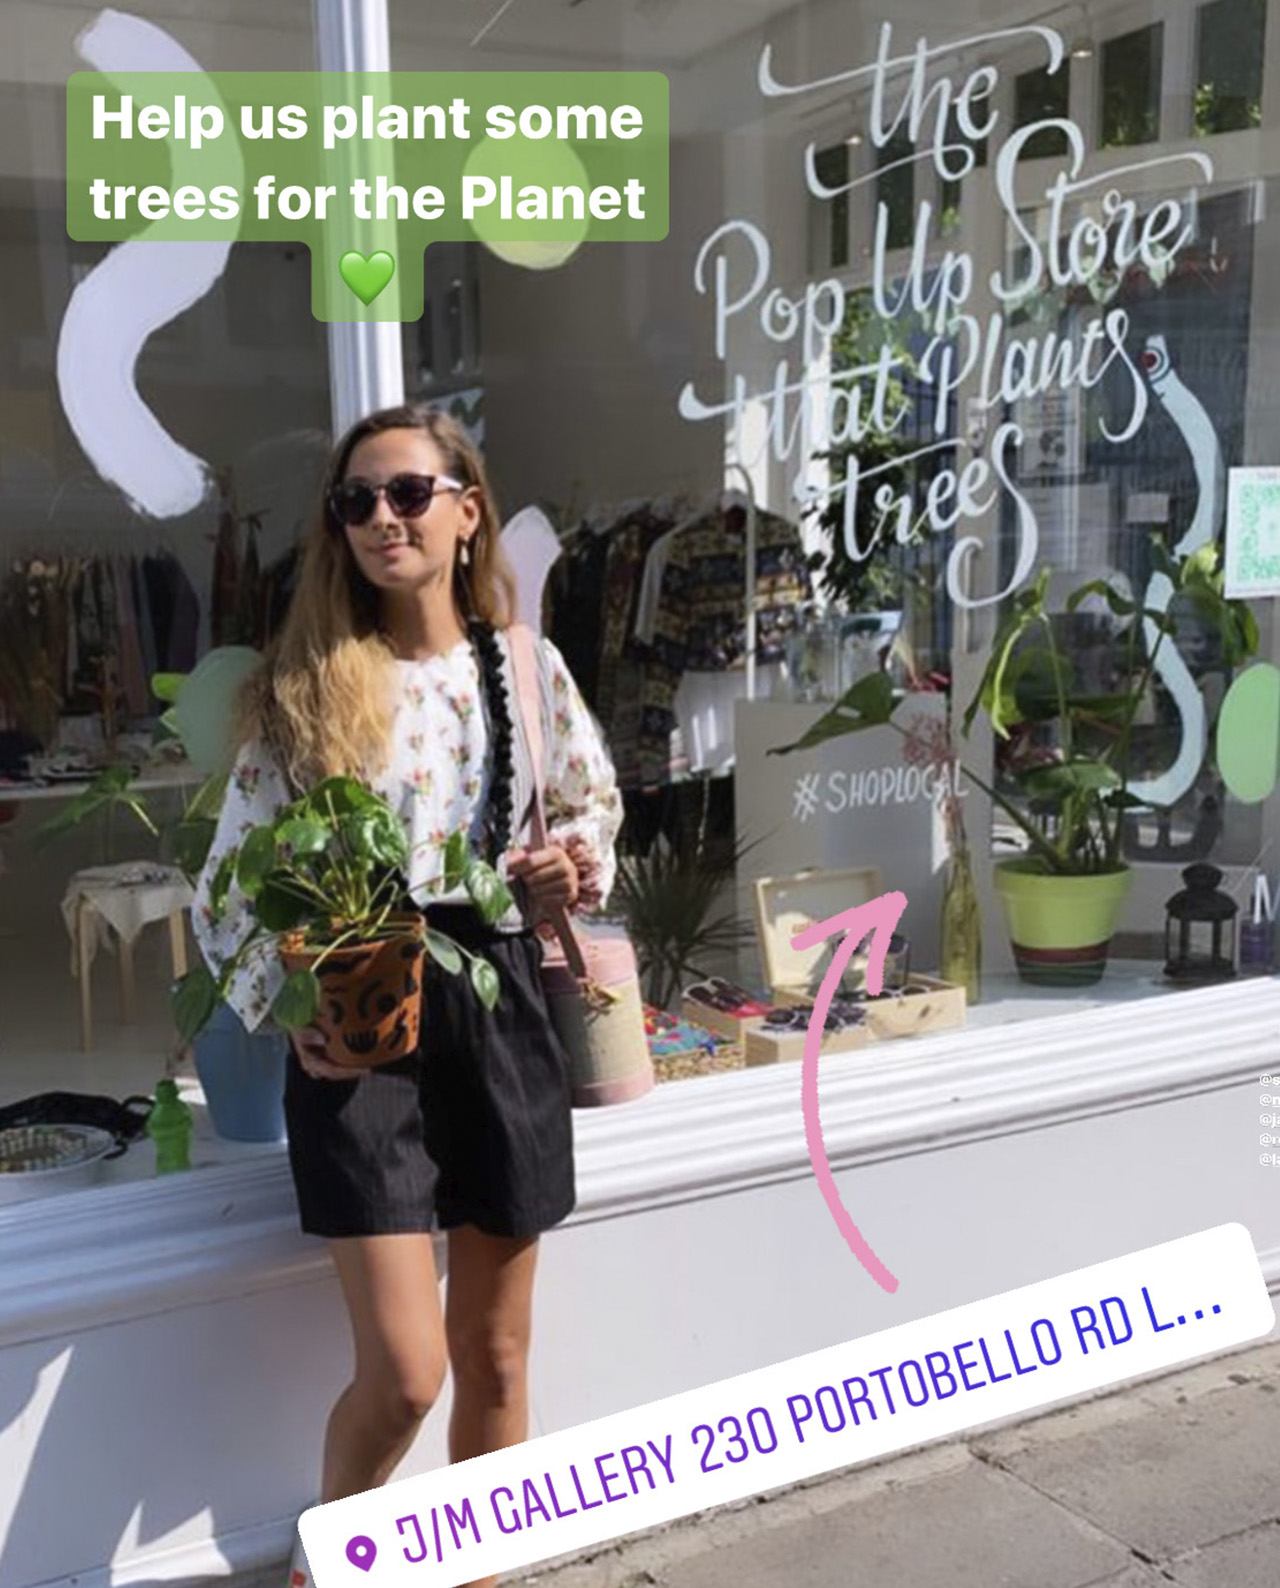 The Pop Up Store That Plants Trees